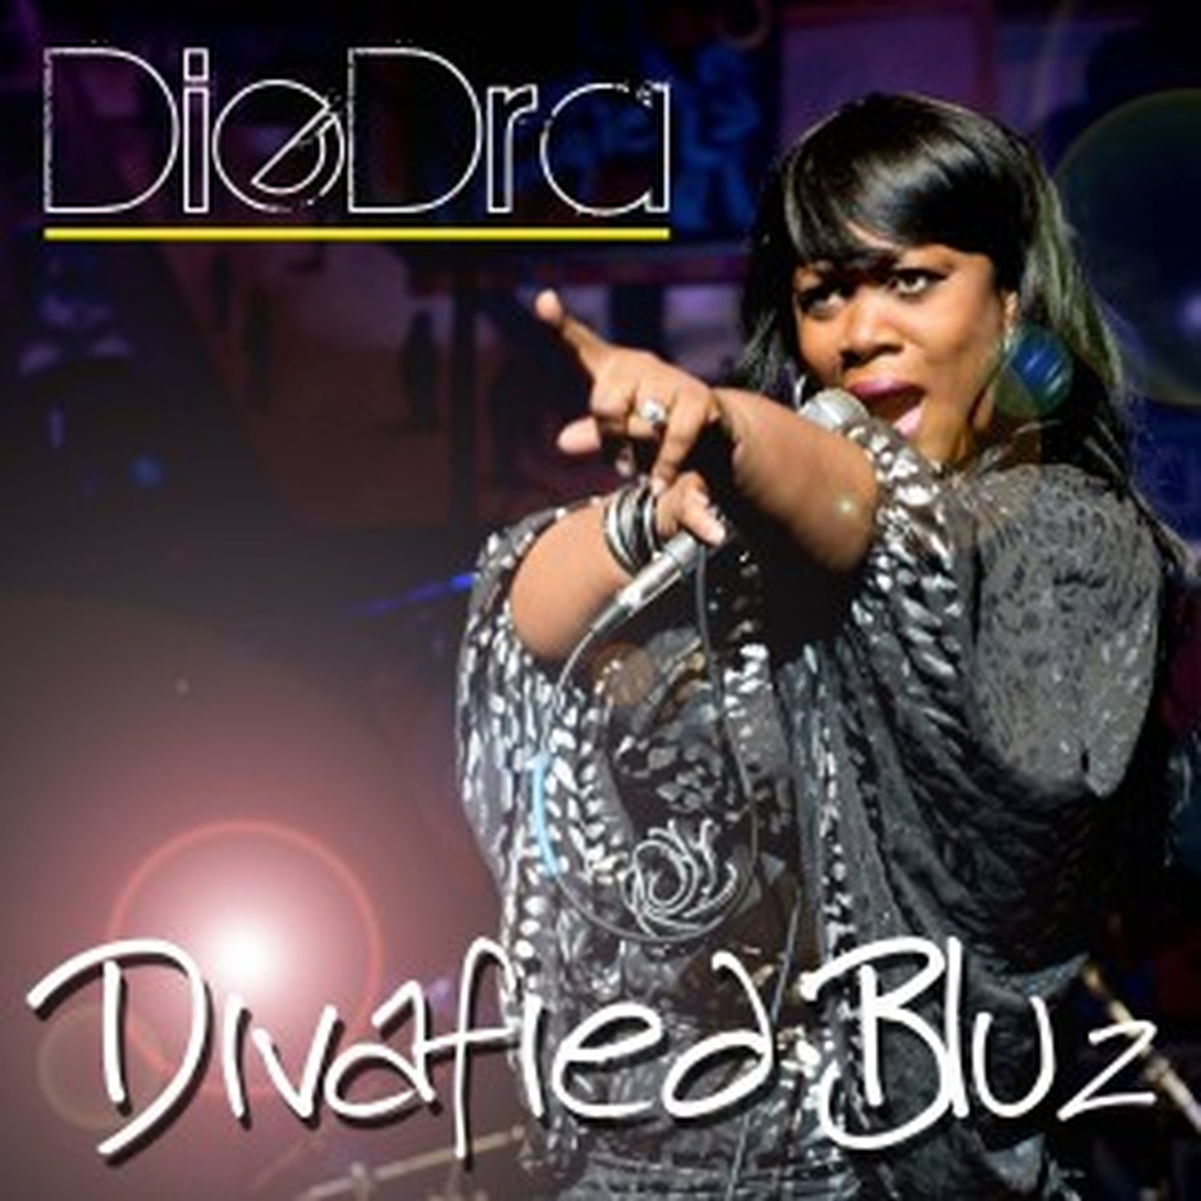 DieDra & The Ruff Pro Band